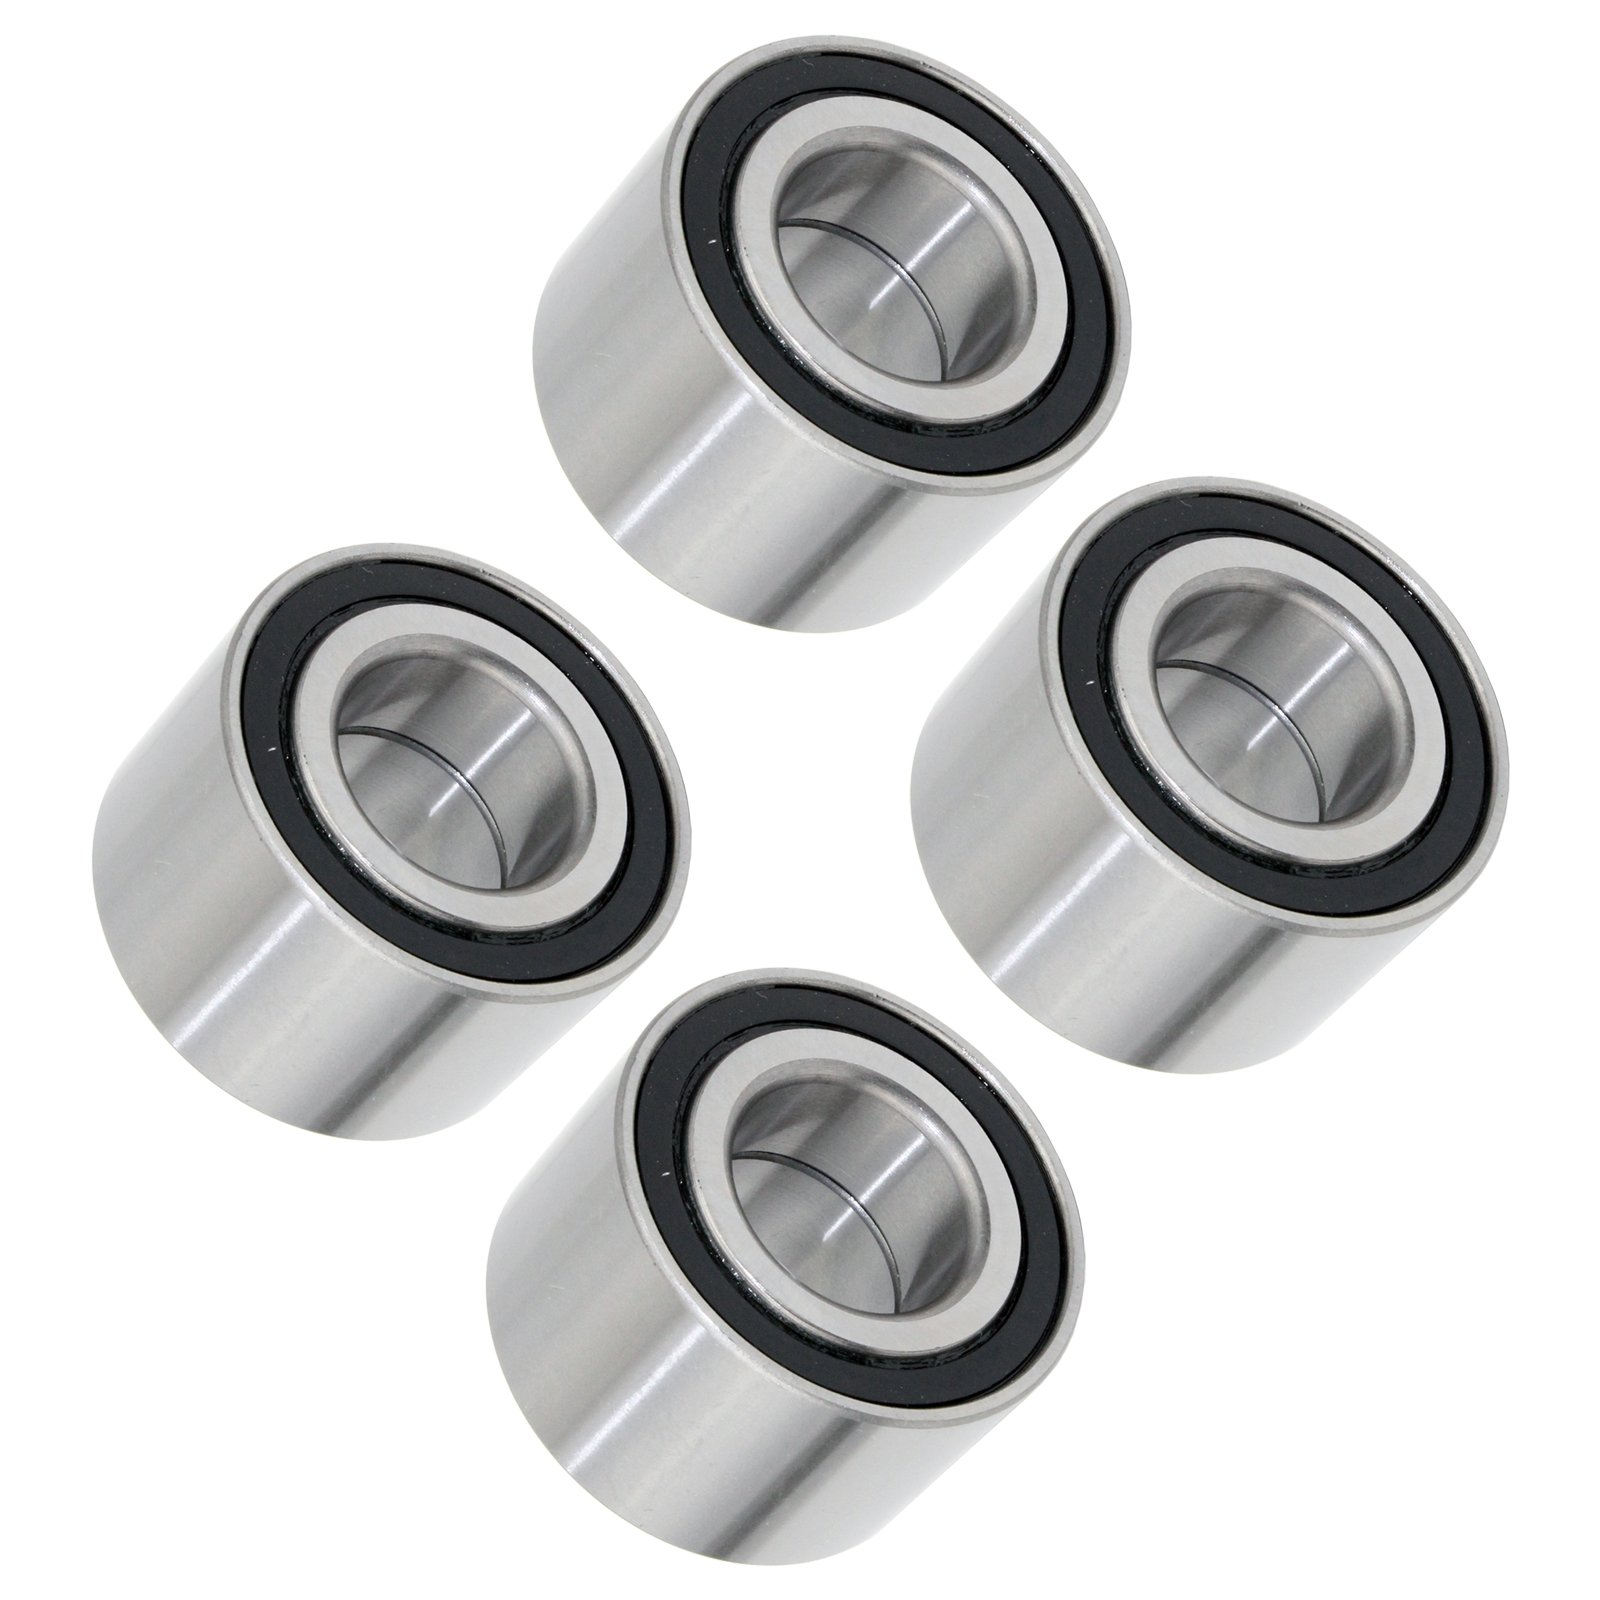 CALTRIC SET OF 4 FRONT REAR WHEEL BALL BEARINGS FIT Can-Am OUTLANDER MAX 800R 2009-2015